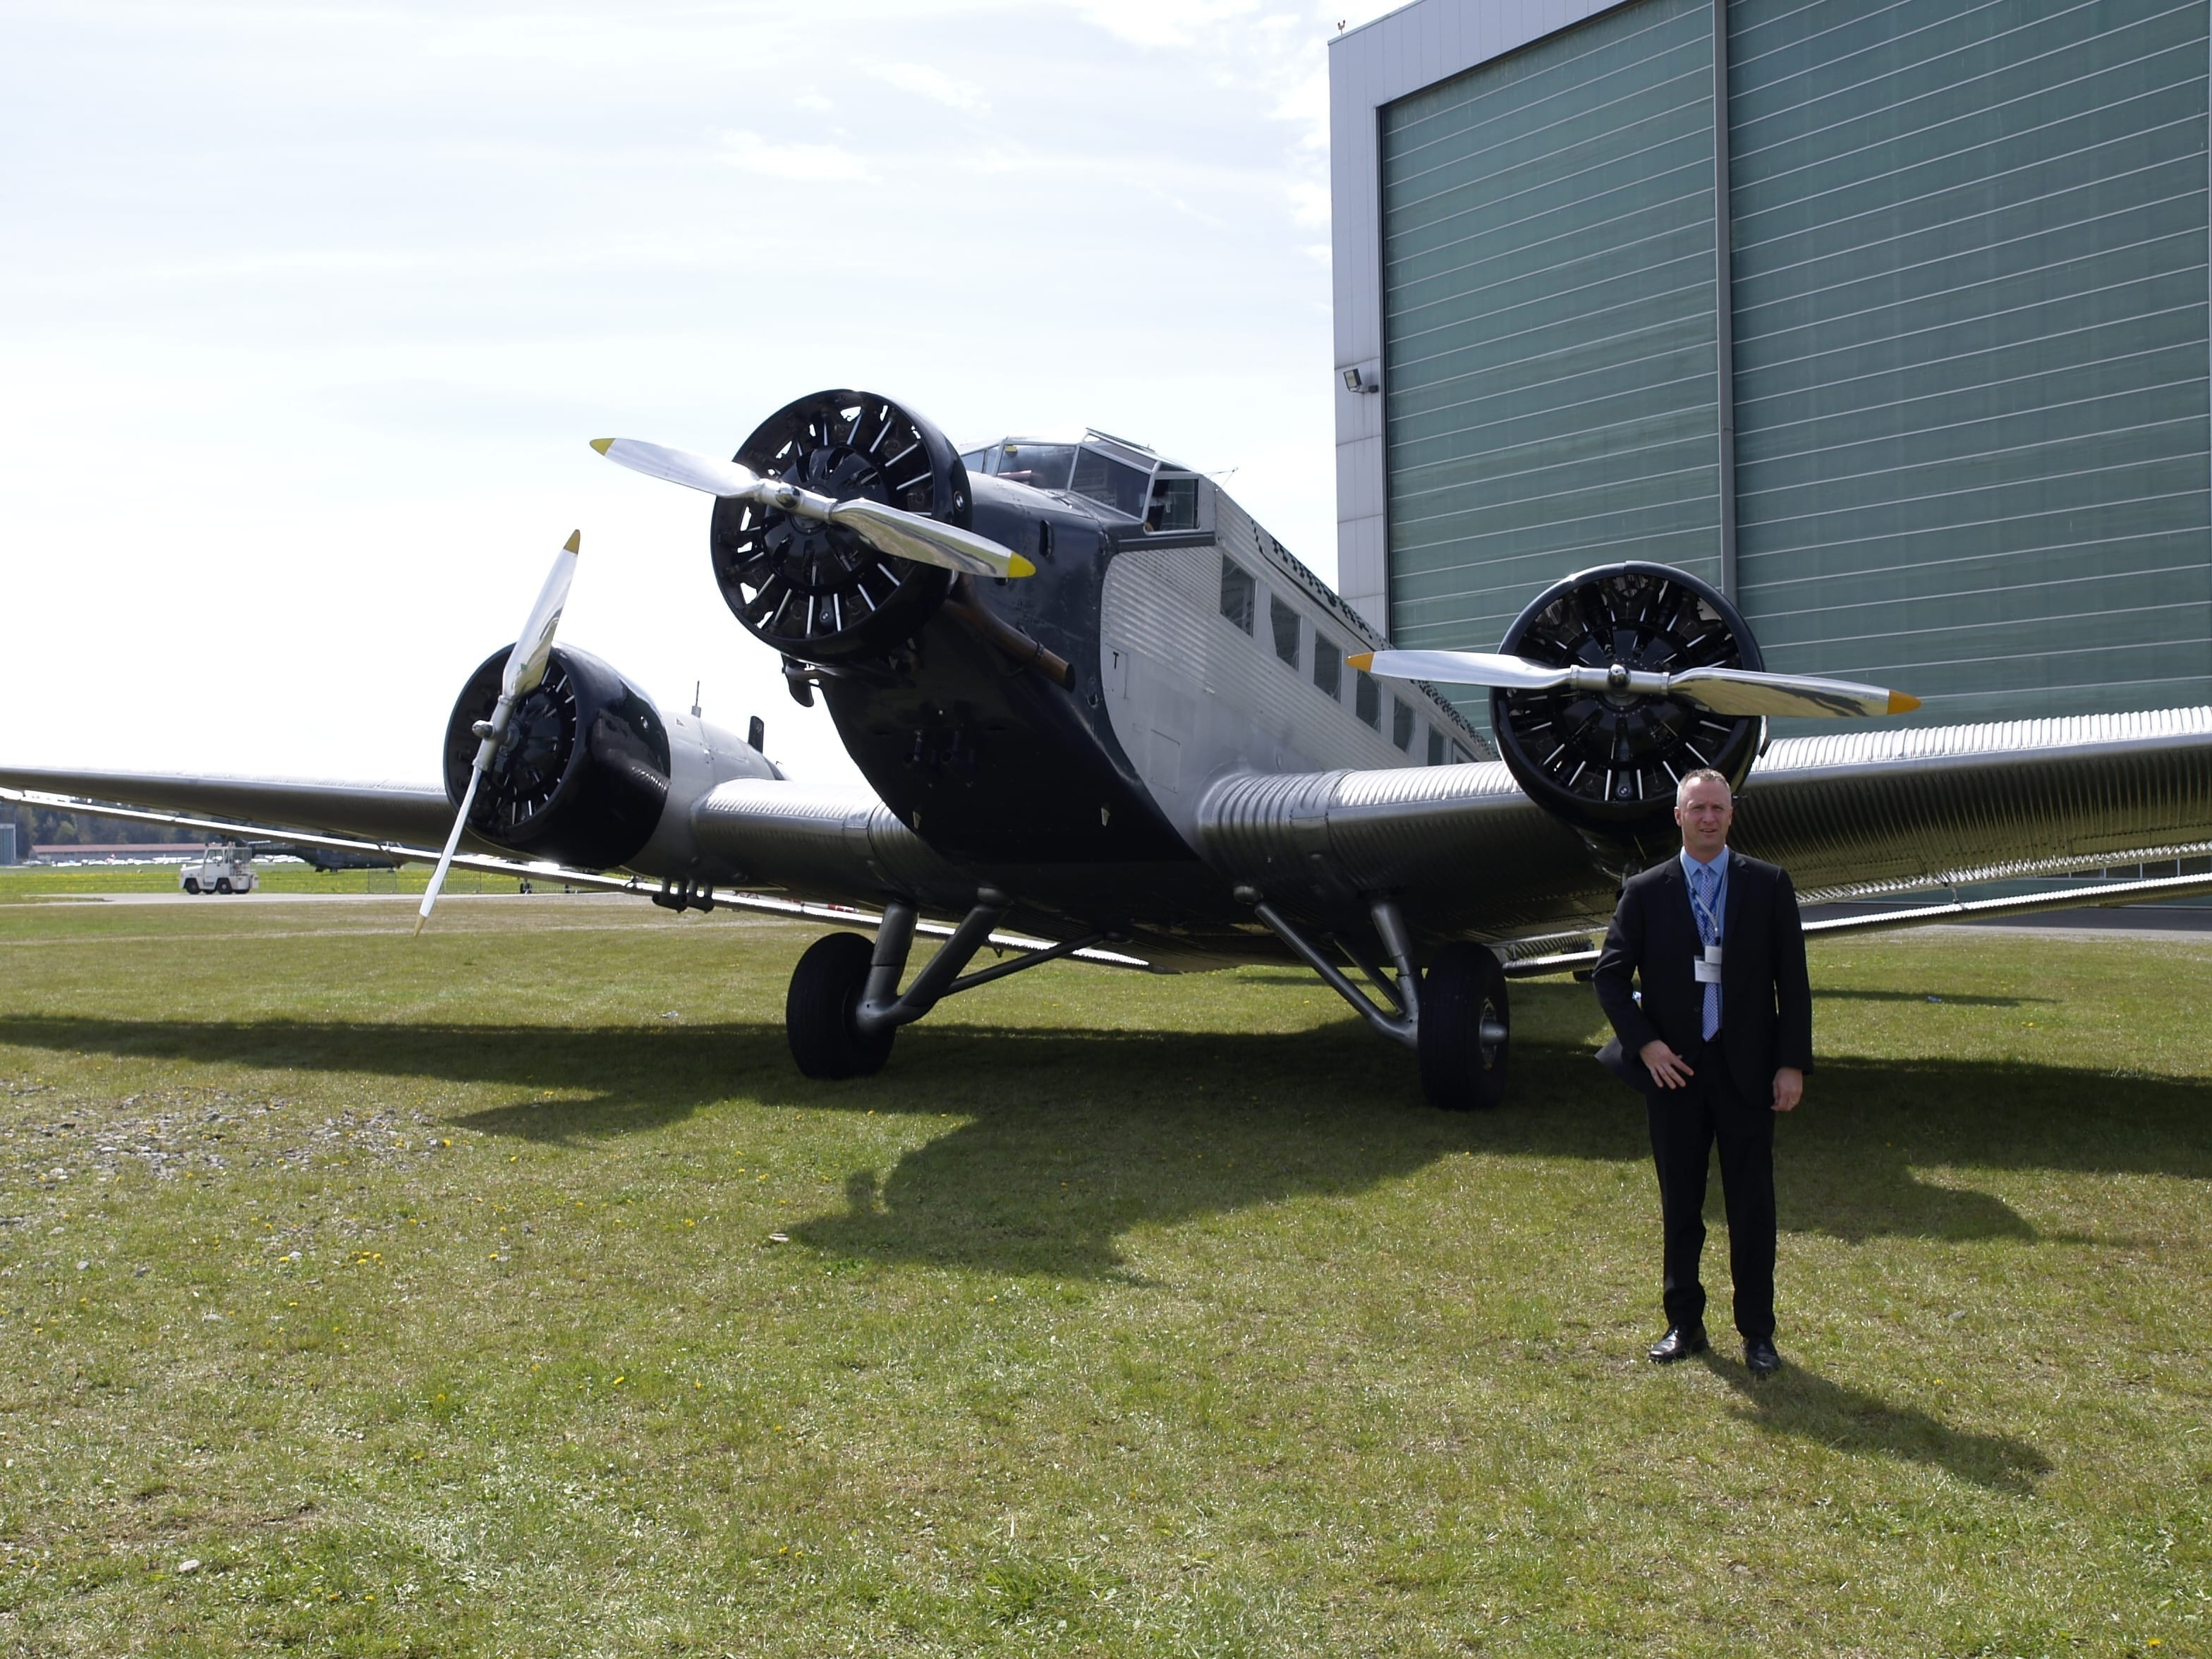 The RIMOWA Junkers JU 52 tri-motor, with EAA's Jeff Kaufman, after the April 19 announcement in Germany that AirVenture would be included on the airplane's North American tour. (photo by Marino Boric)